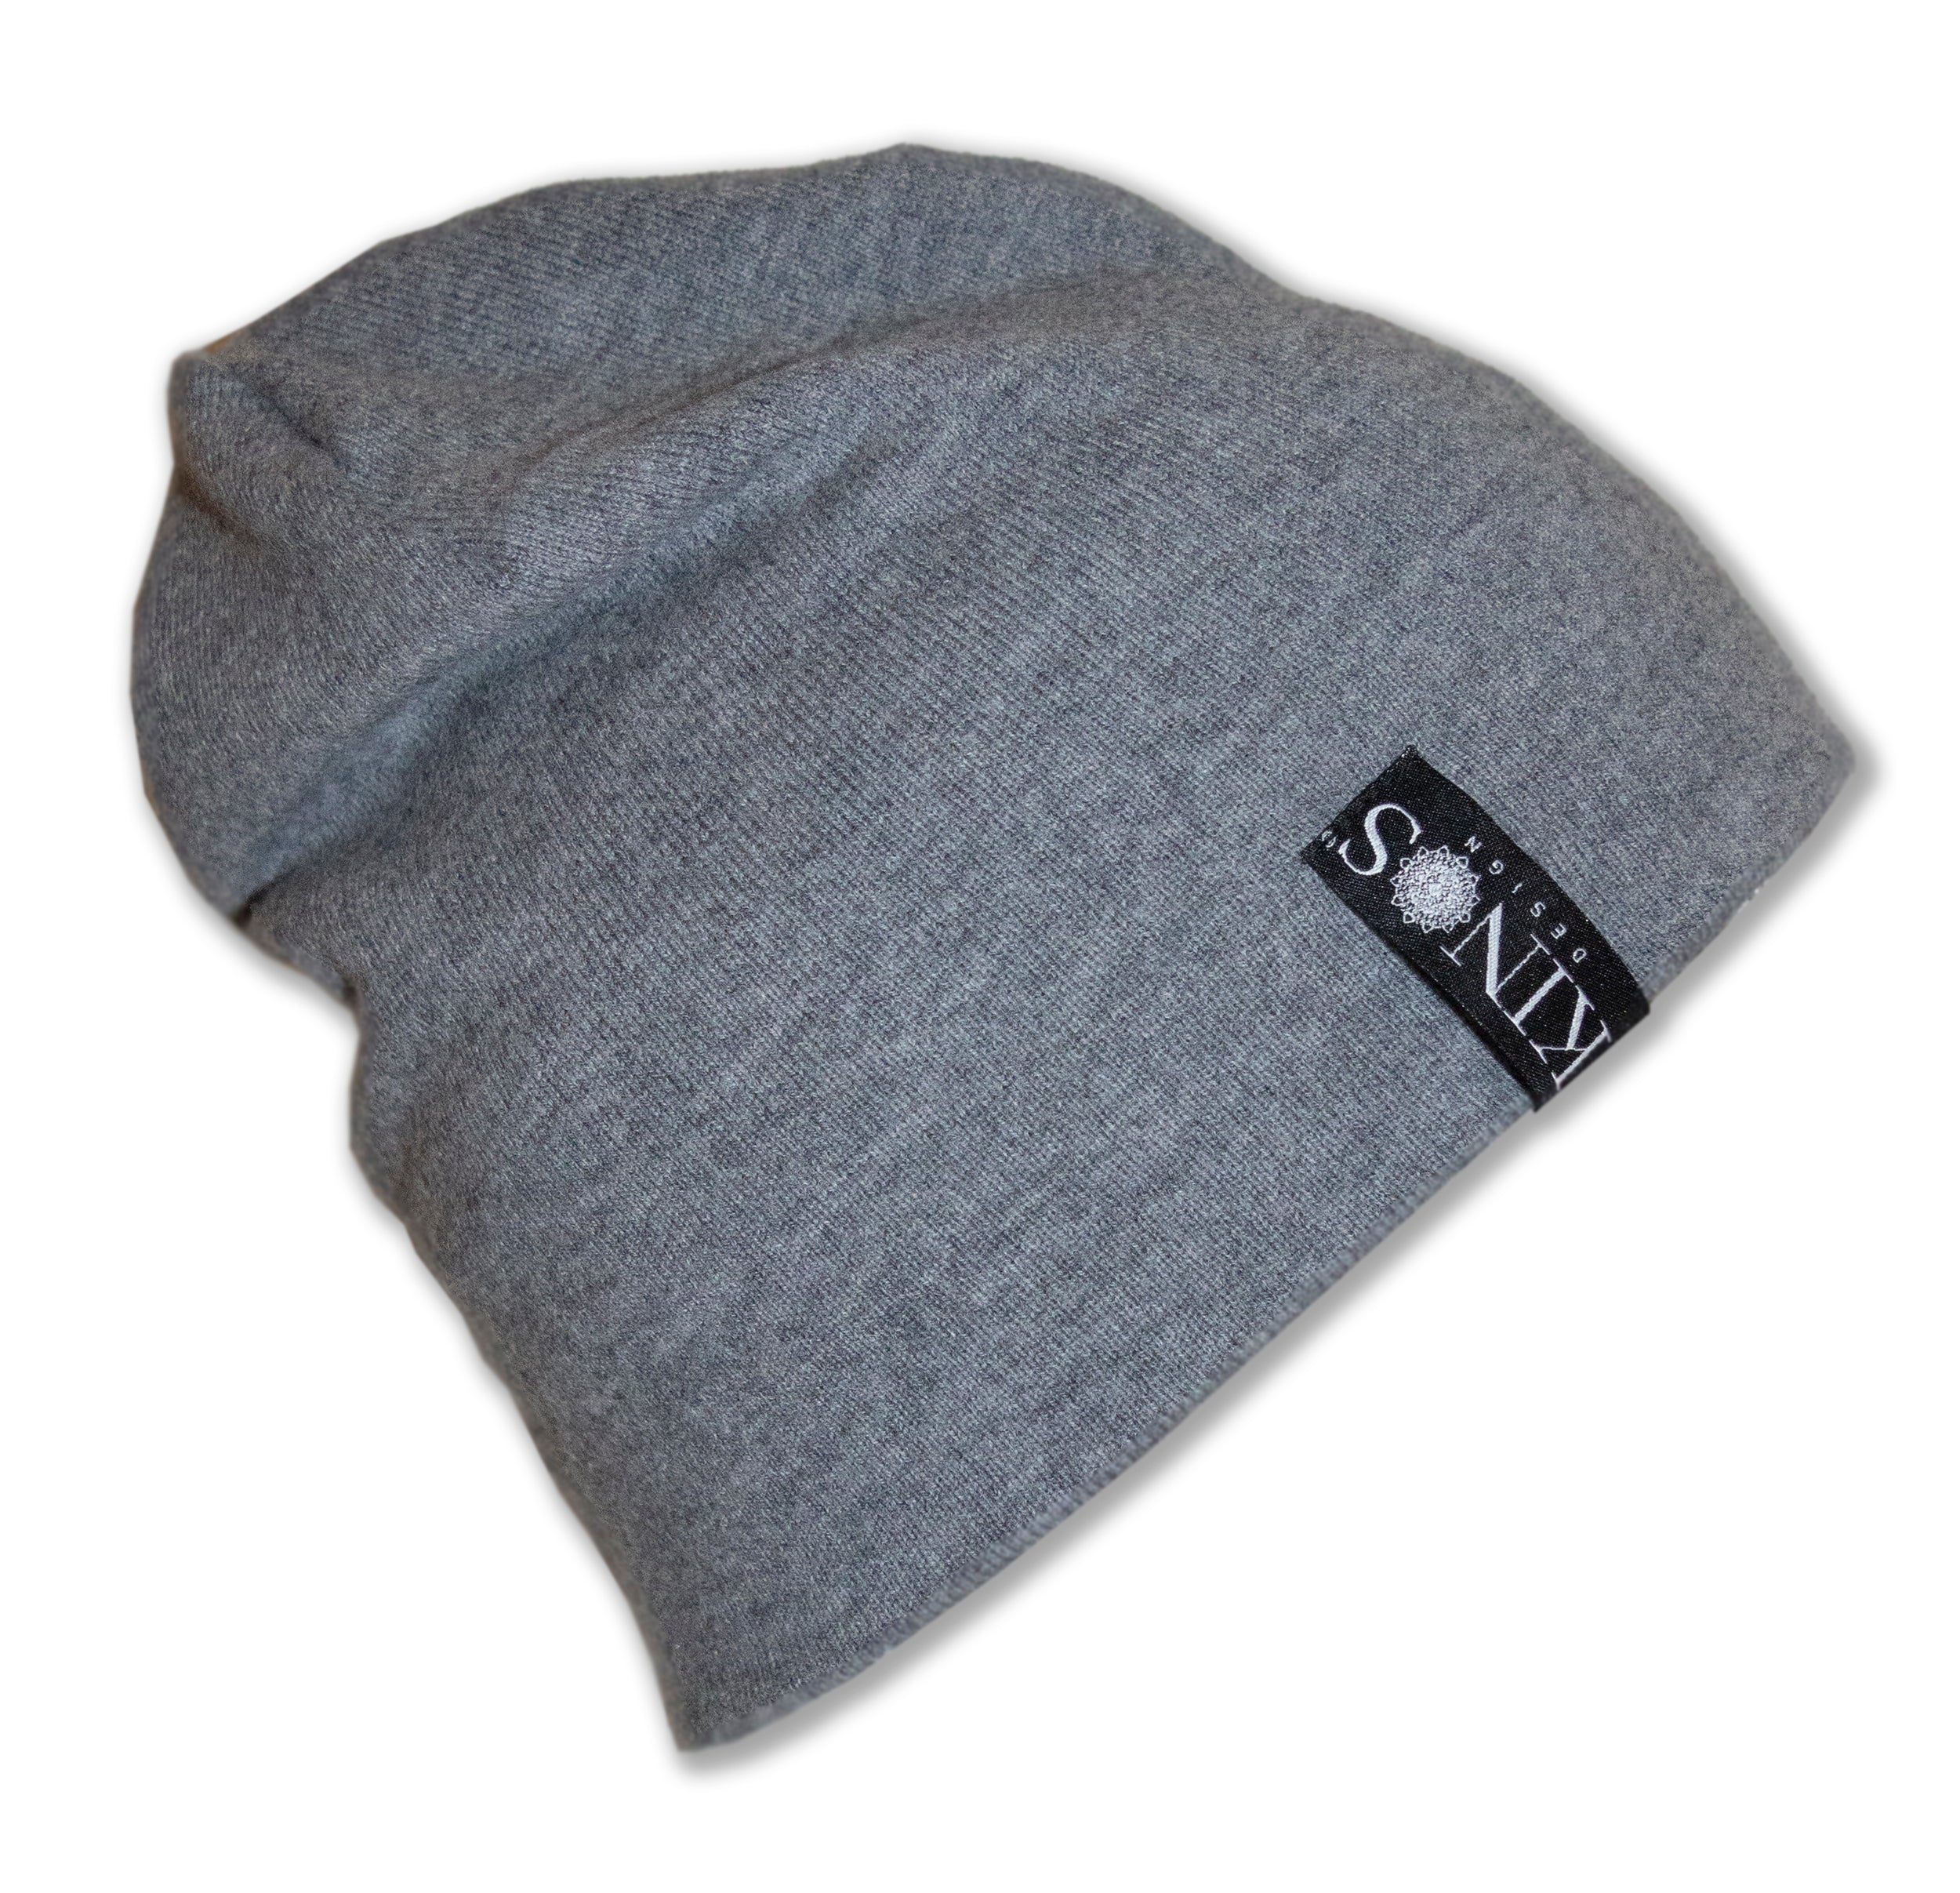 Grey Men's Merino Wool Hanki Beanie by Kinos Design made in Finland